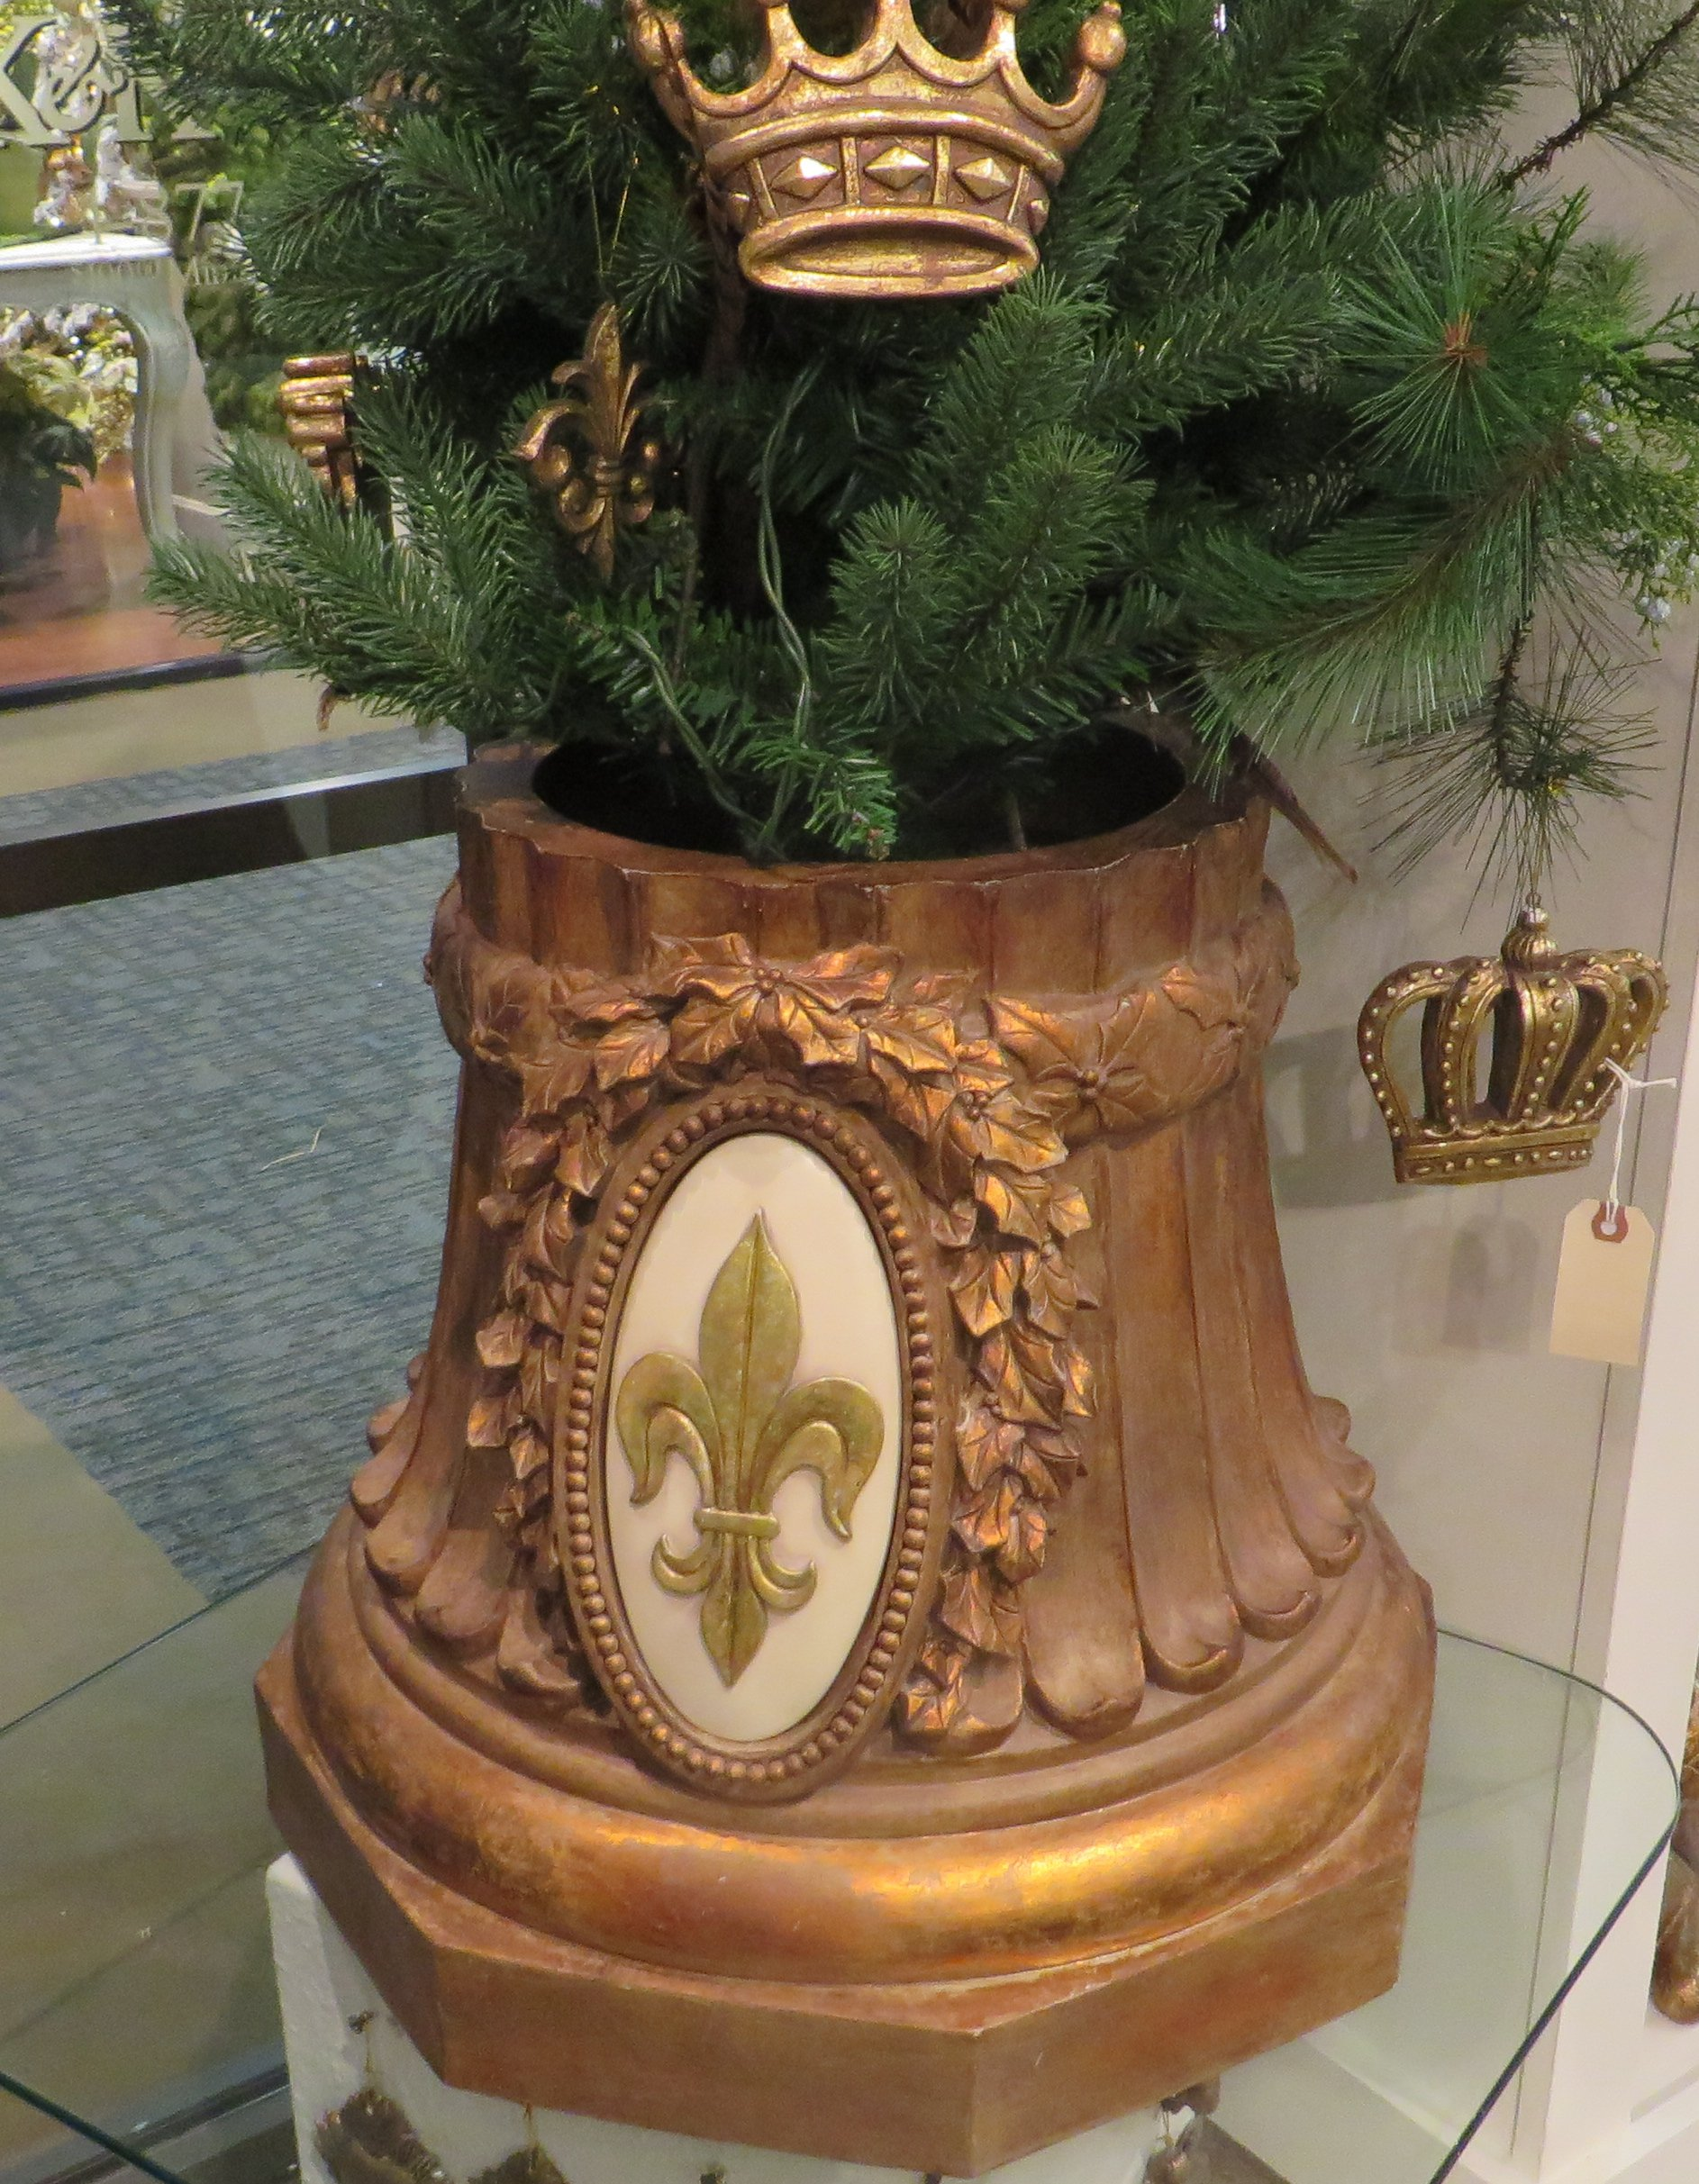 Ornate Gold Fleur de Lis Tree Holder | Christmas Xmas Urn Stand European Old World by My Swanky Home (Image #2)